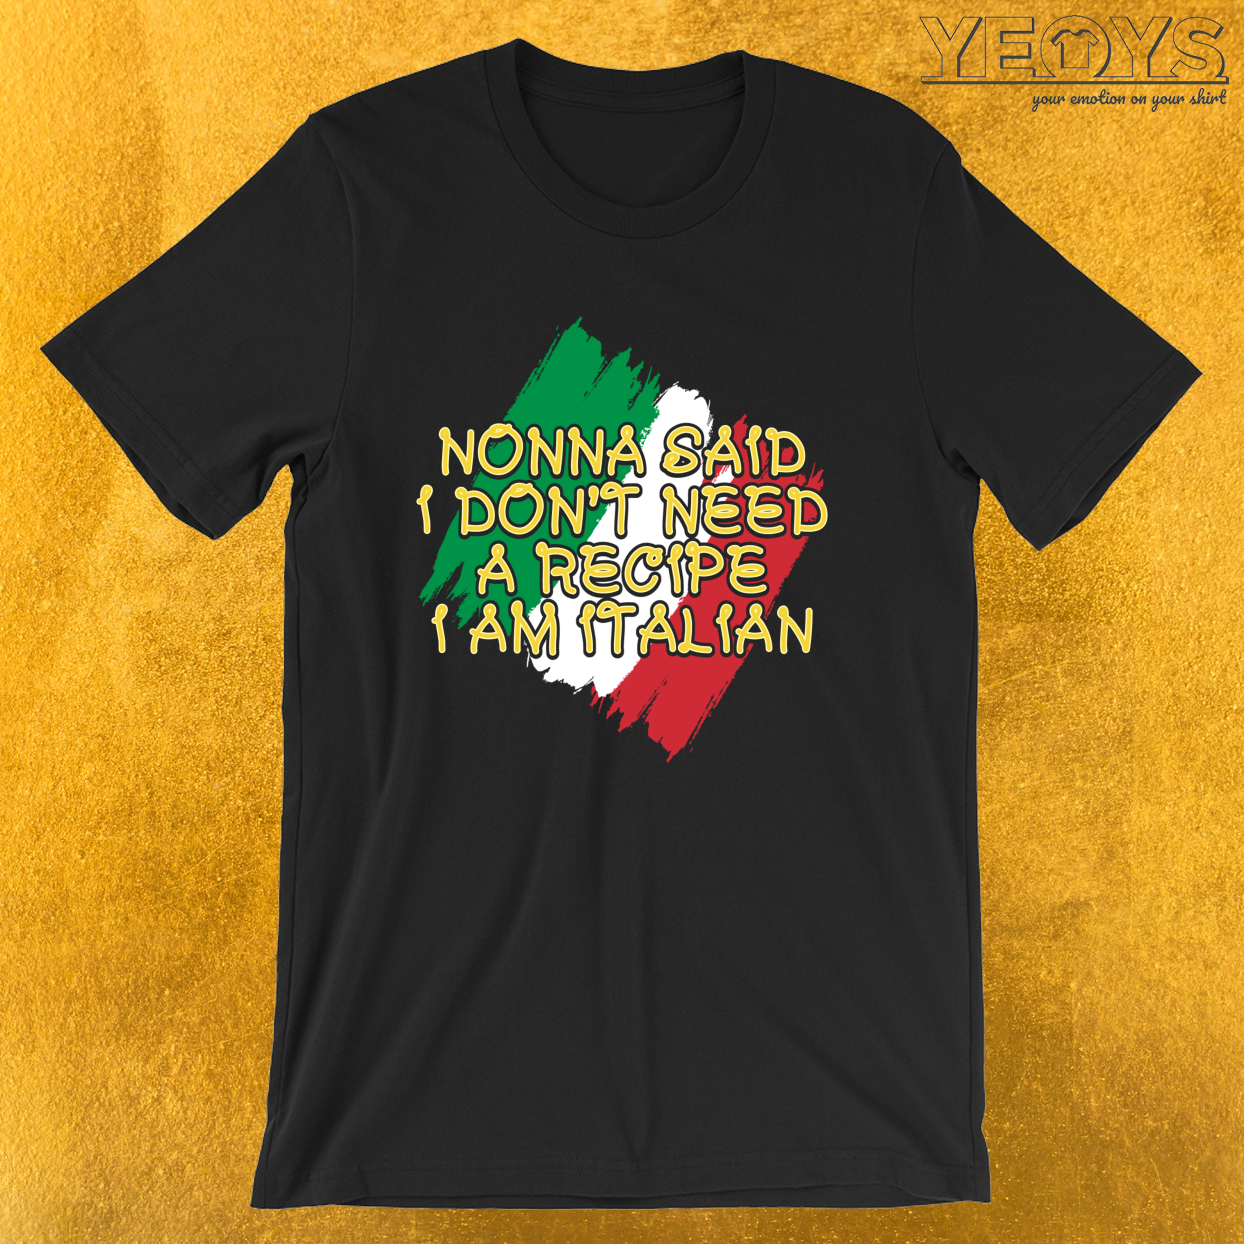 Nonna Said I Don't Need A Recipe I Am Italian – Funny I Love Italian Pasta Tee